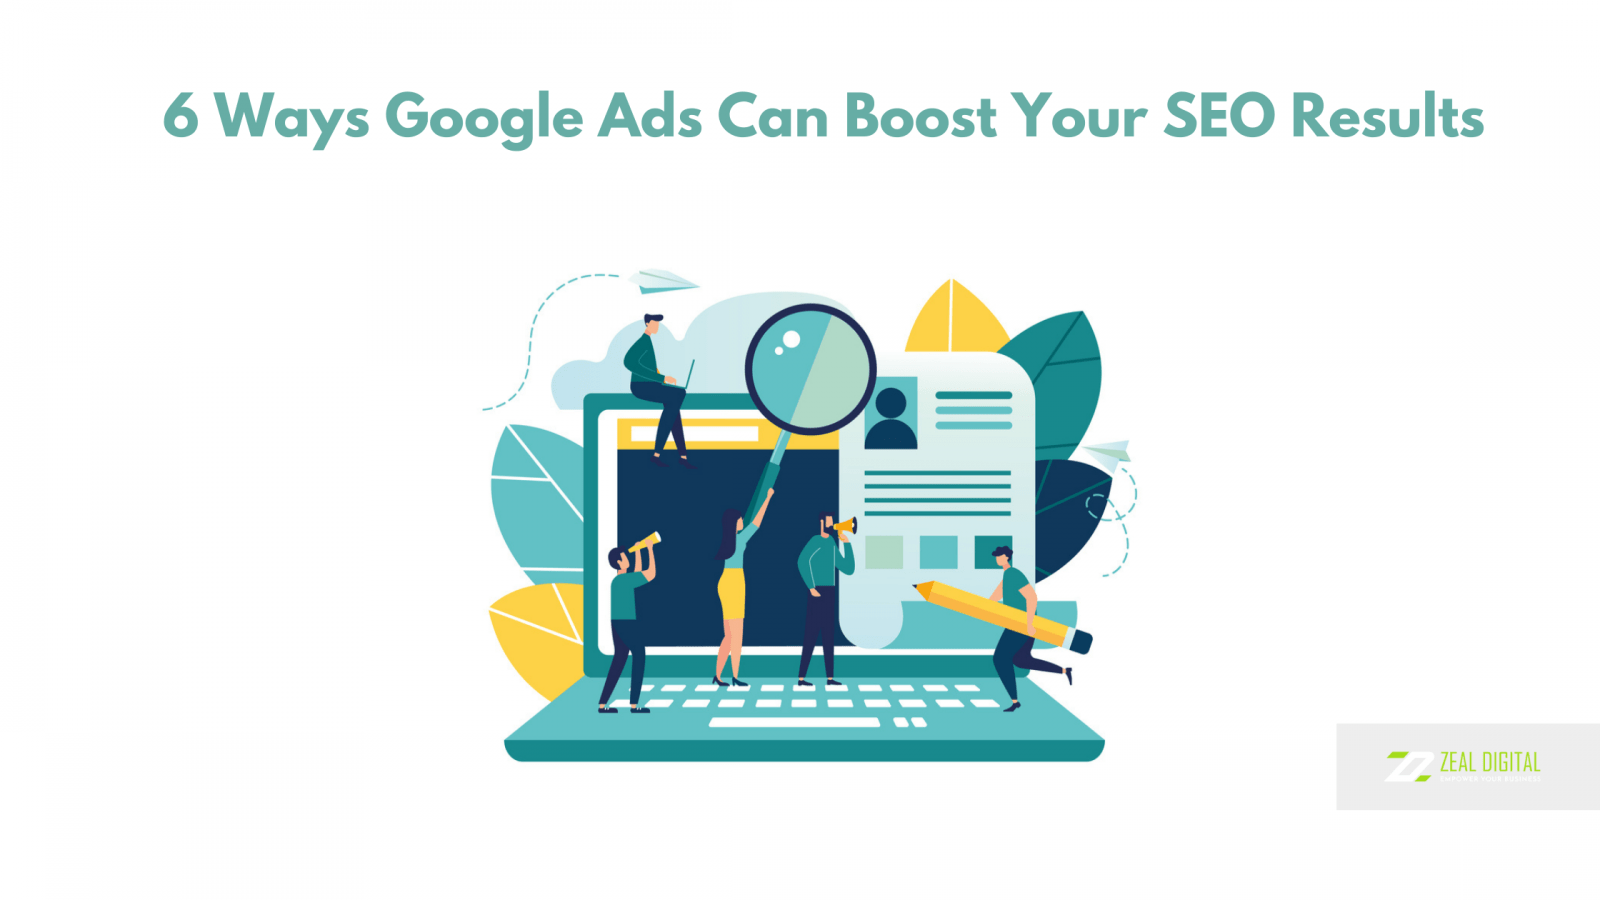 6 Ways Google Ads Can Boost Your SEO